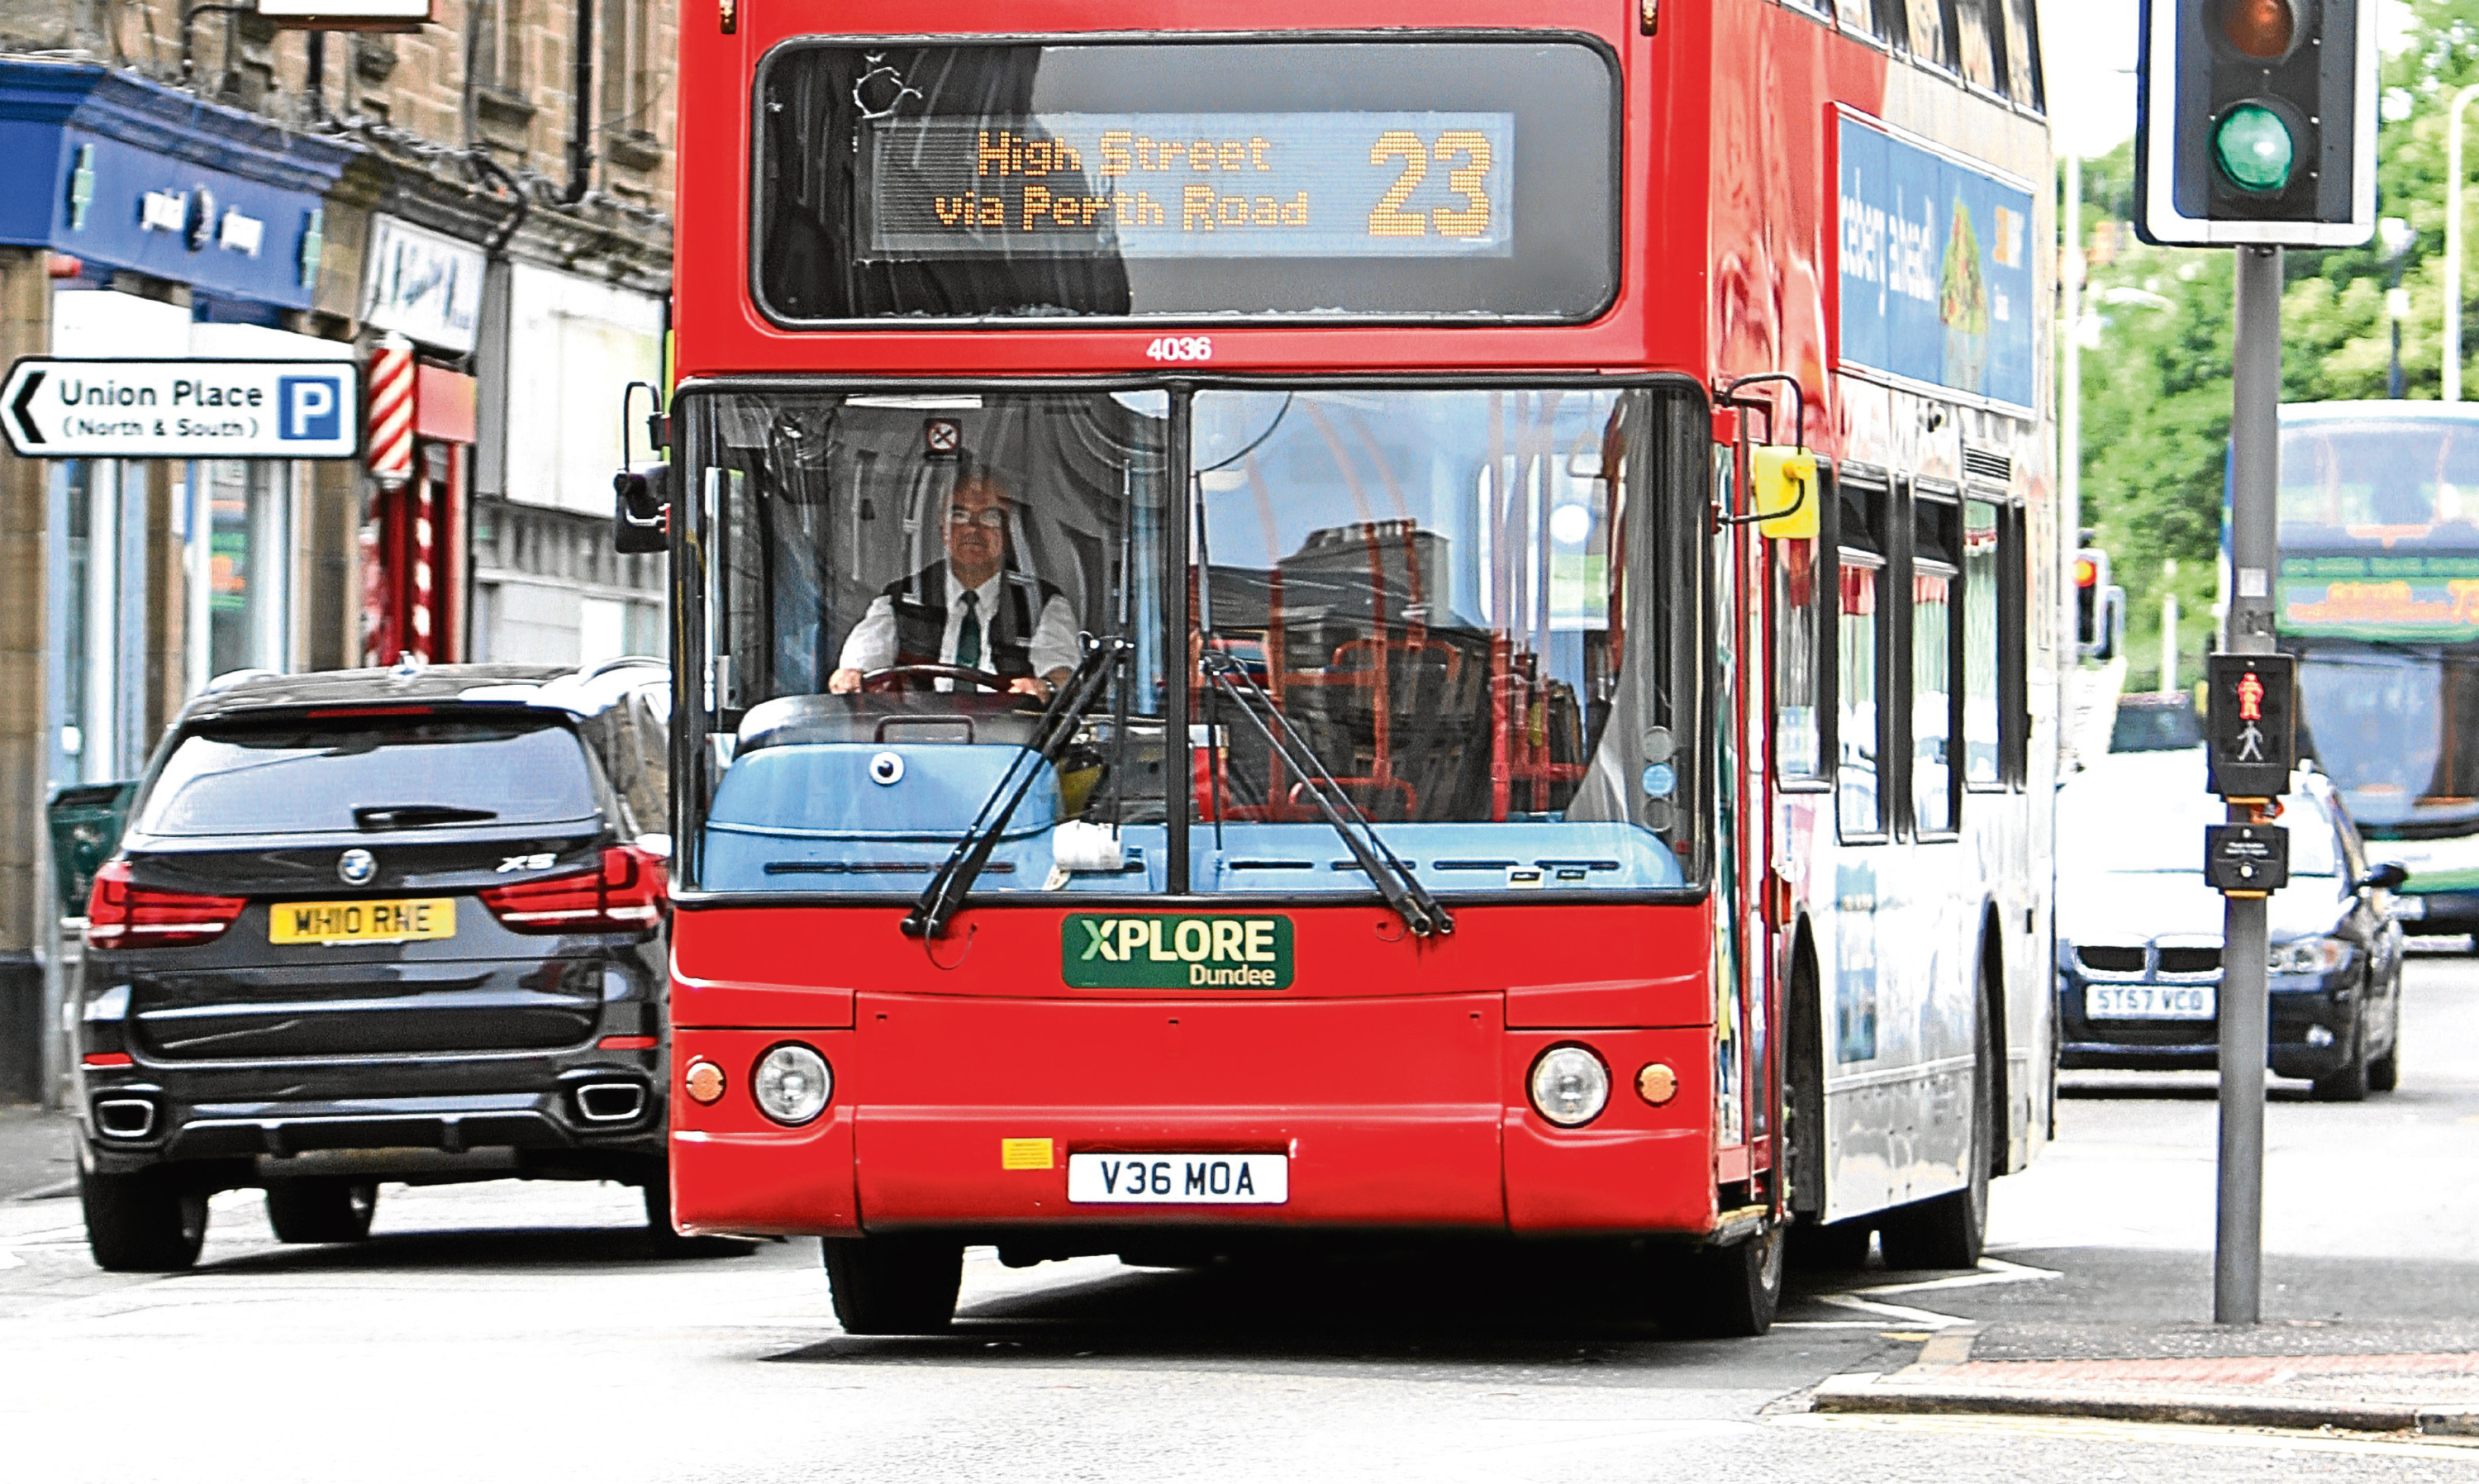 An Xplore Dundee bus on Perth Road, Dundee.